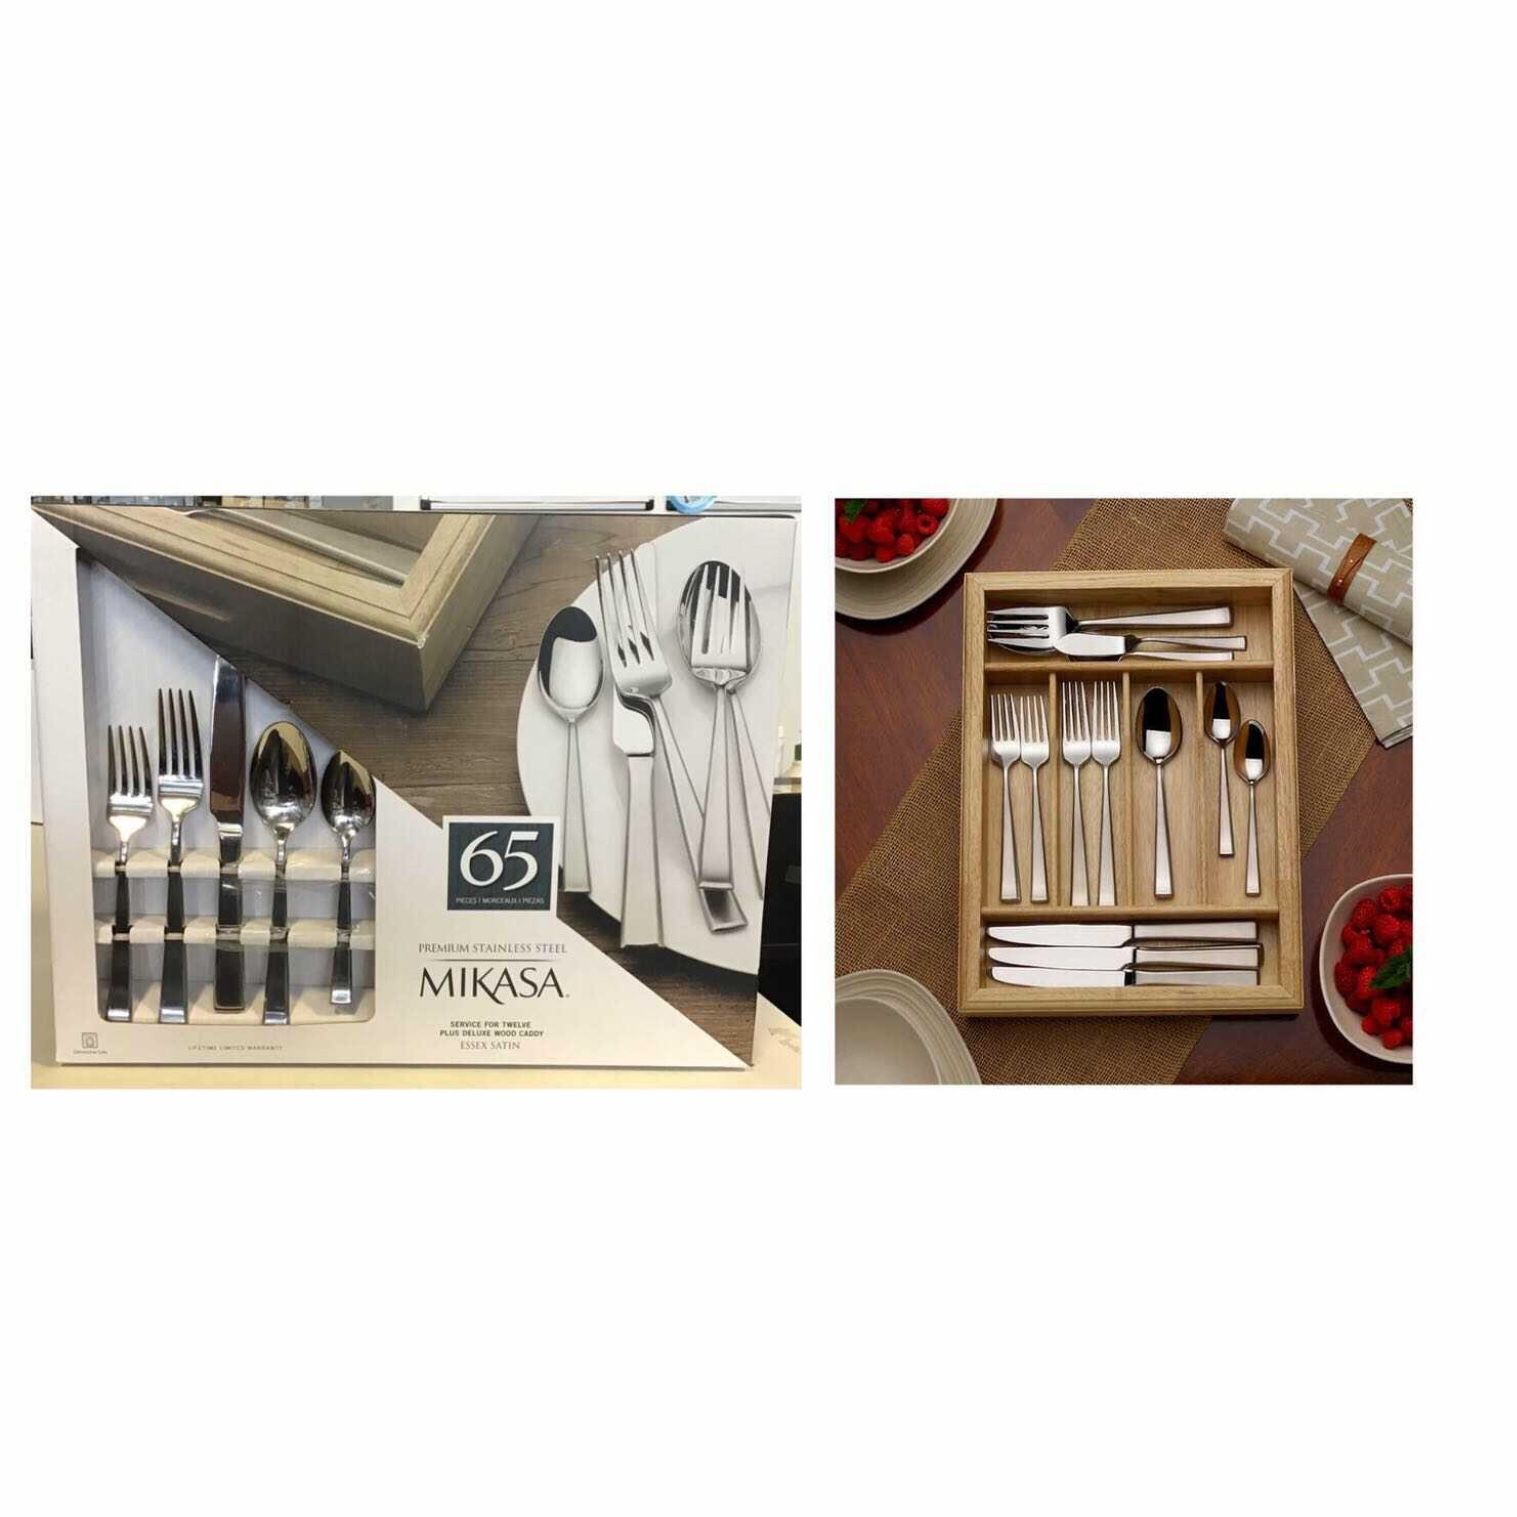 Mikasa  exess satin 65 Piece stainless steel silverware set with wood caddy